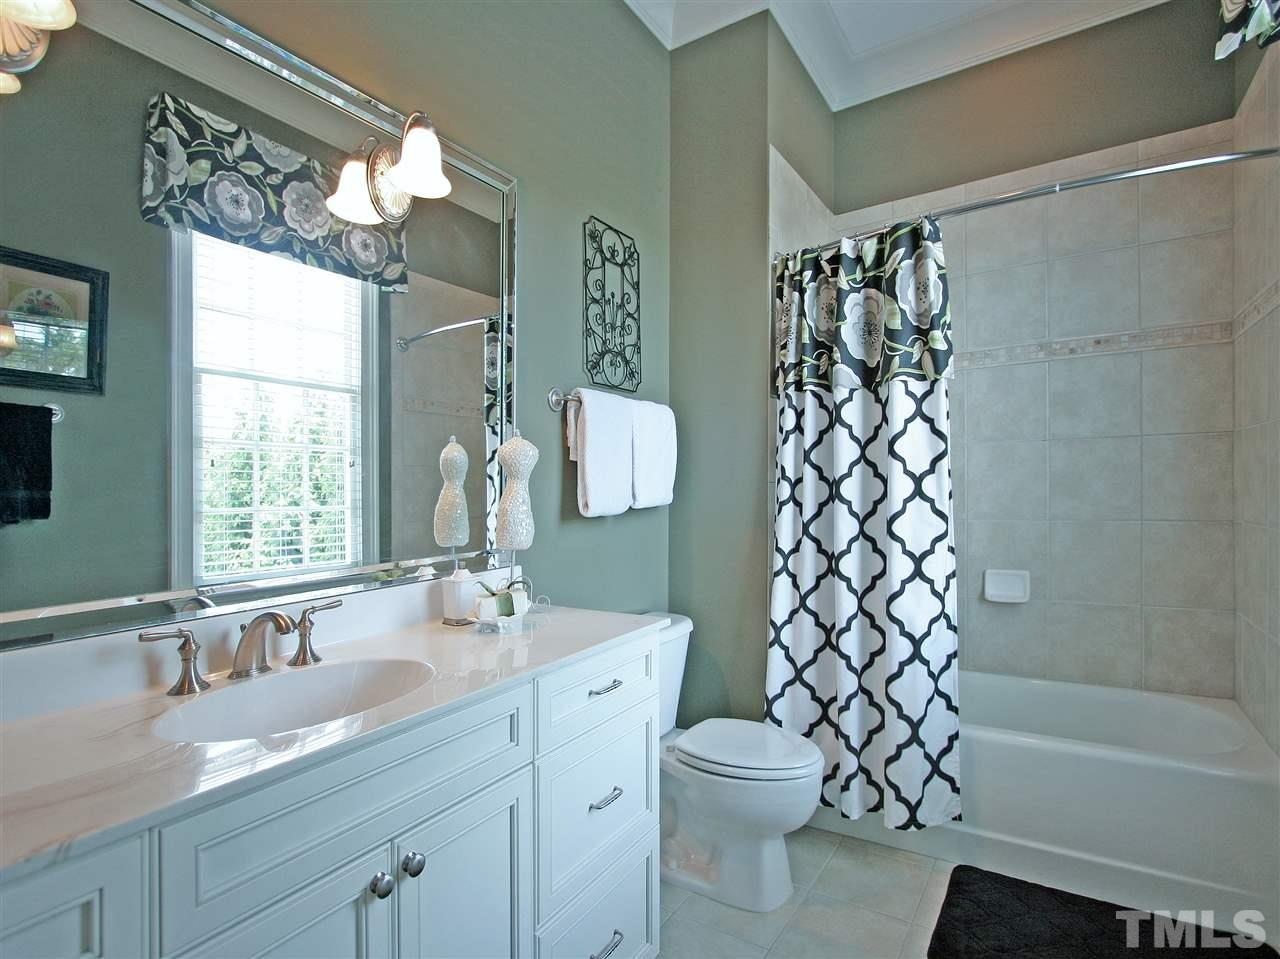 The home has four full baths plus two half baths. This en suite full bath makes it's adjoining bedroom perfect for guests. Note the custom tile and framed mirror.